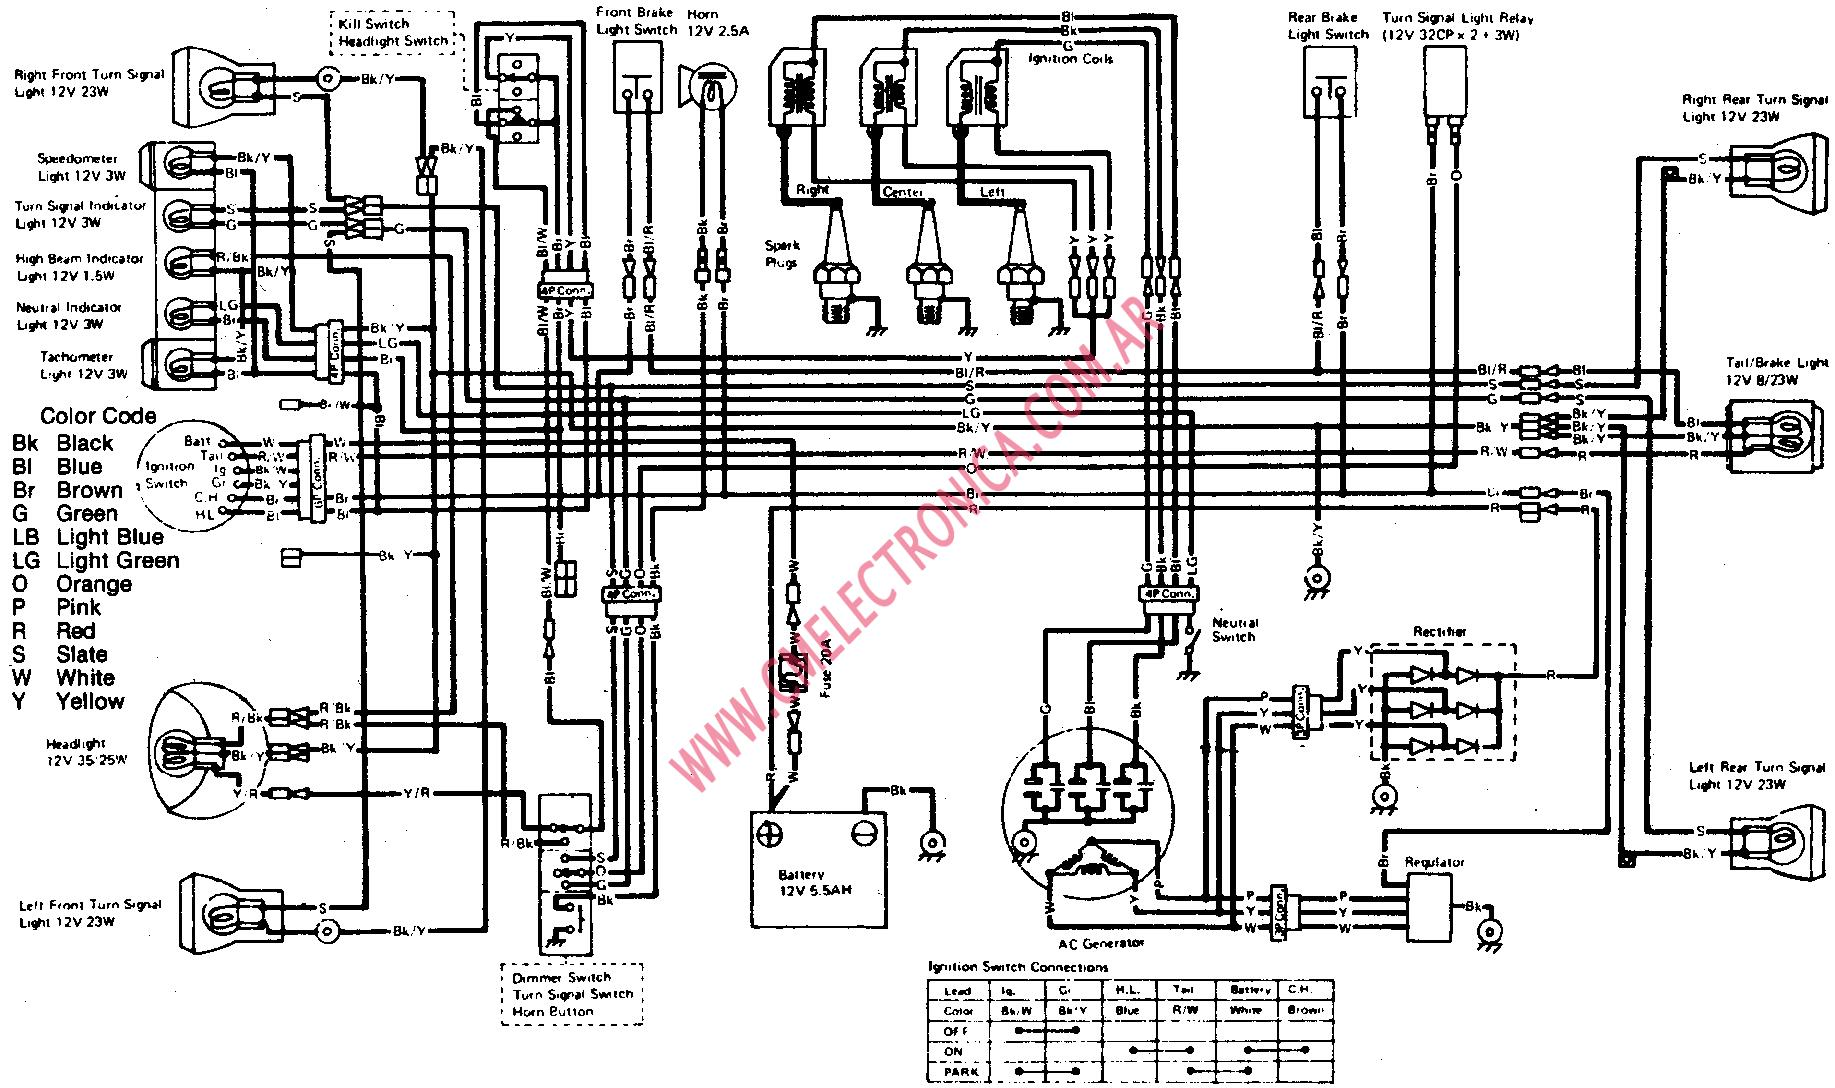 1998 Kawasaki Prairie 400 Wiring Diagram - Wiring Diagram Local on kawasaki klt 200 wiring diagram, kawasaki klf 300 wiring diagram, kawasaki kvf 400 wiring diagram, kawasaki kfx 400 wiring diagram, kawasaki kvf 300 wiring diagram,